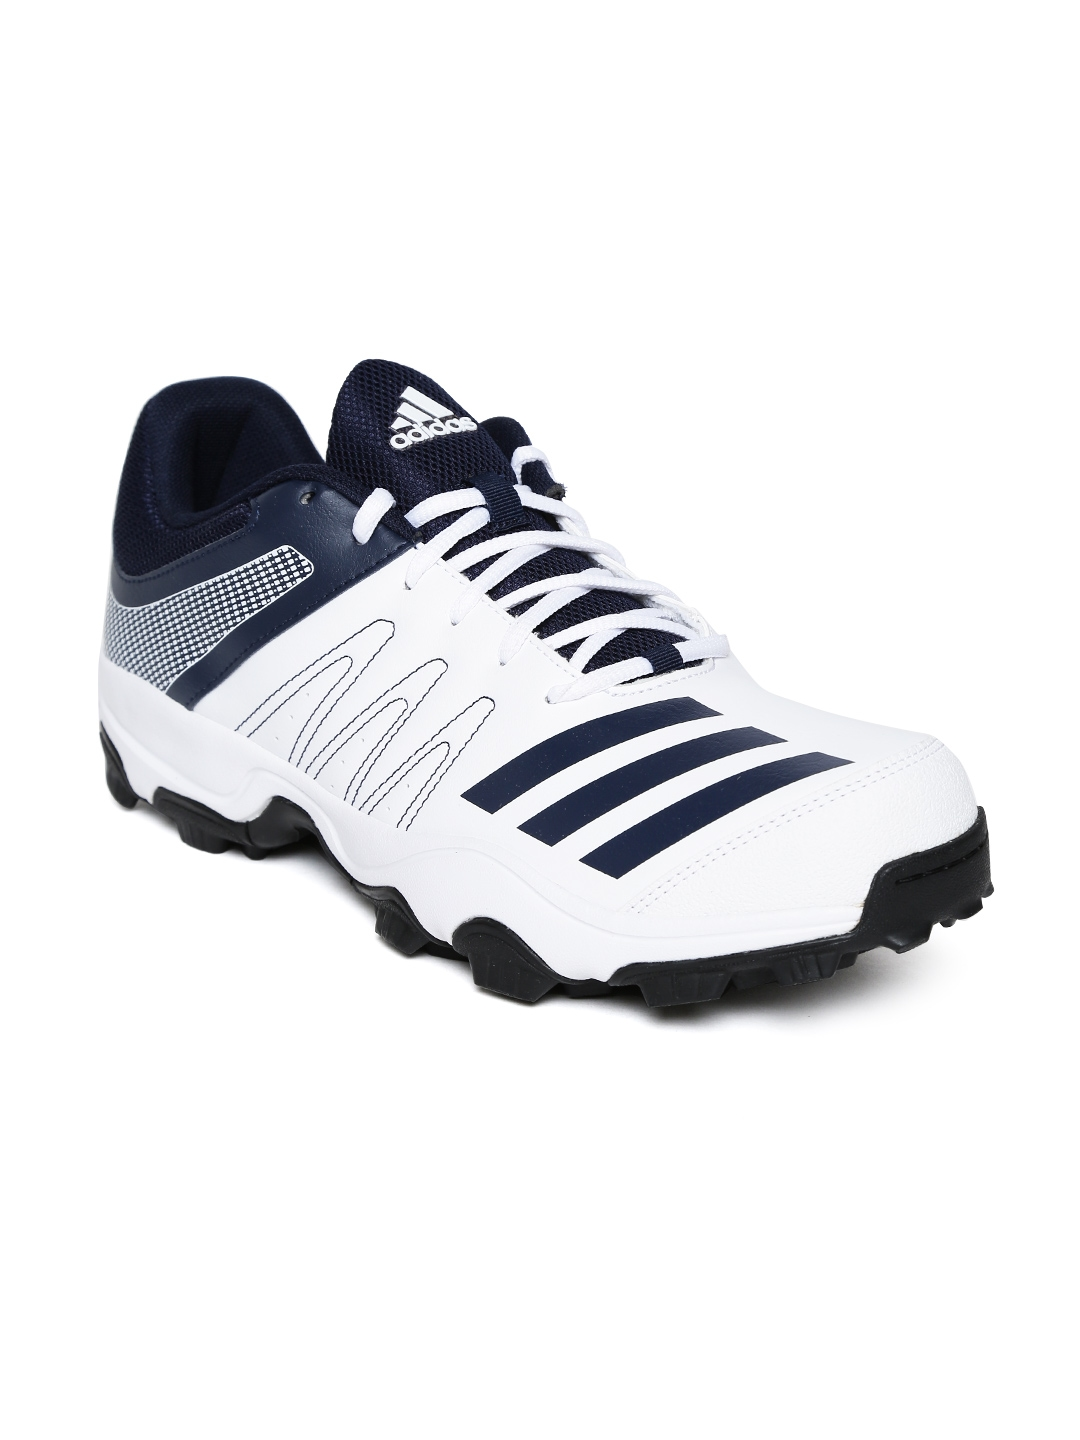 Mens Adidas Shoes India